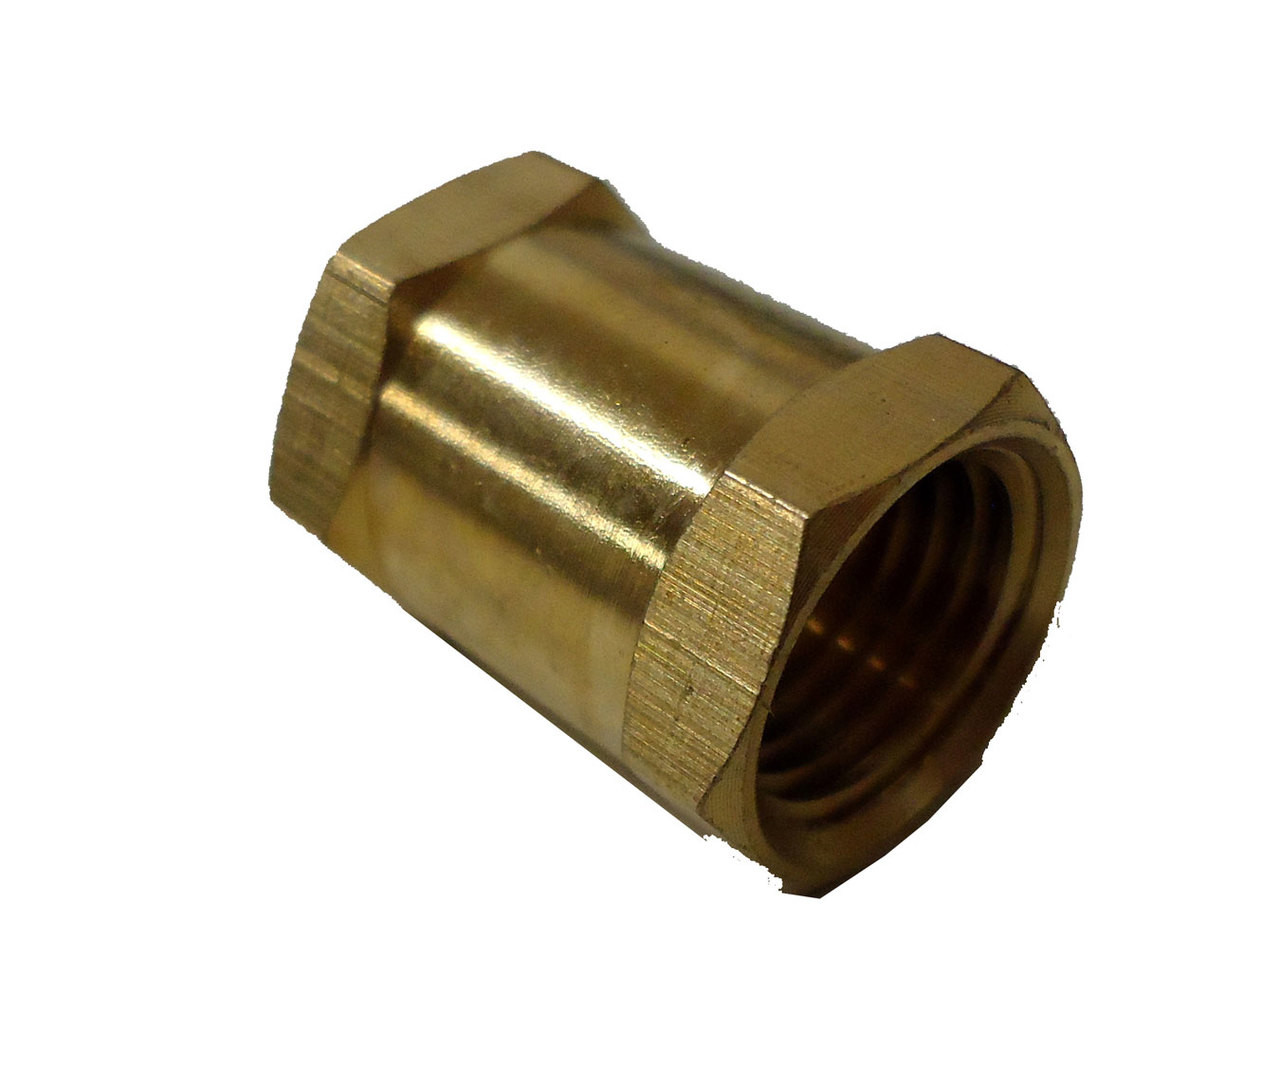 Adapter 1/4 NPT Female to Female Brass Scuba Diving Octo Hose 2nd Stage